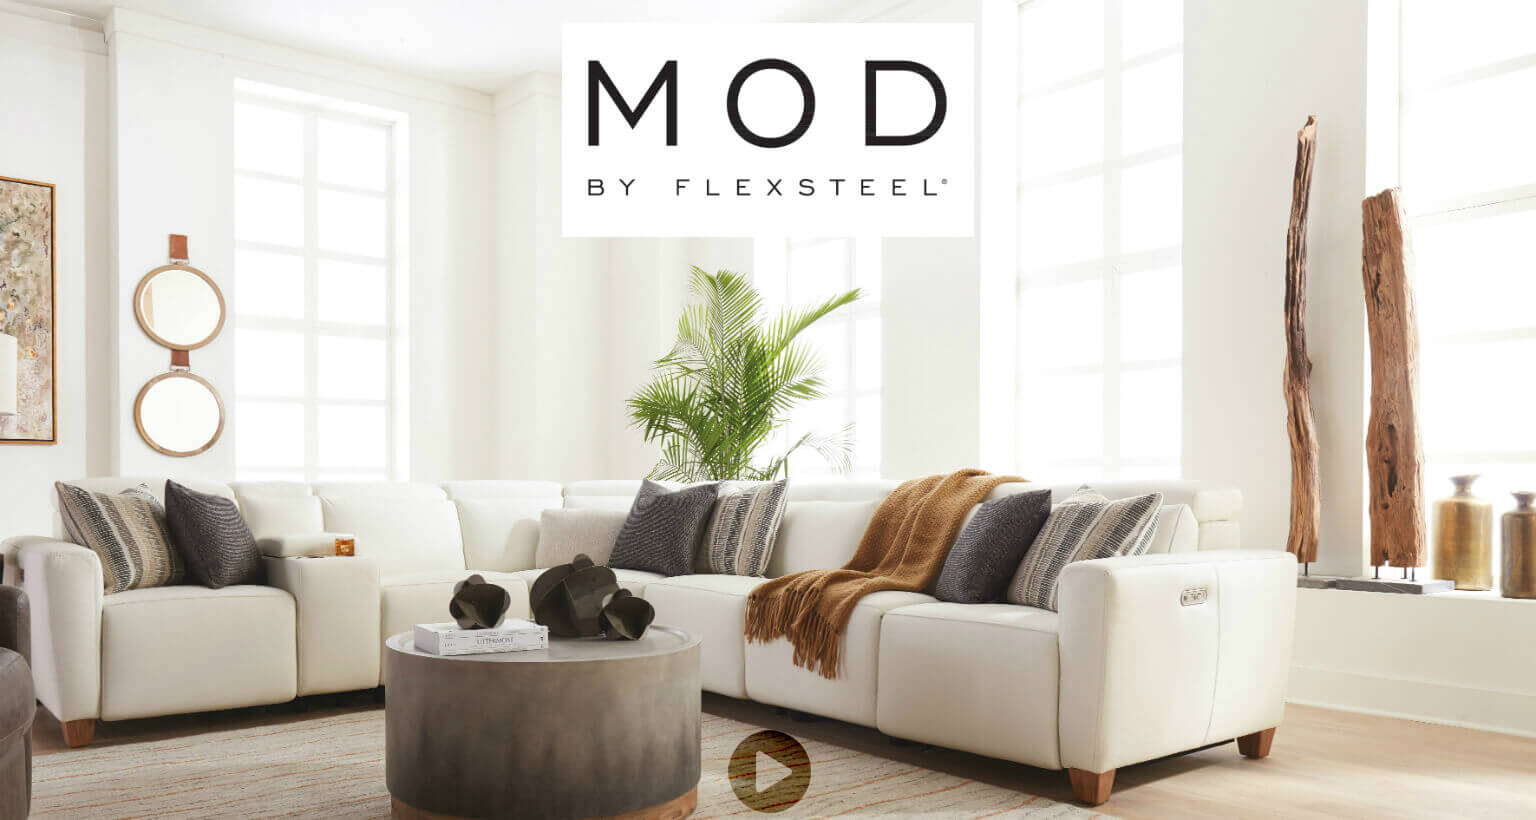 Mod by Flexsteel - Modern Modular Motion